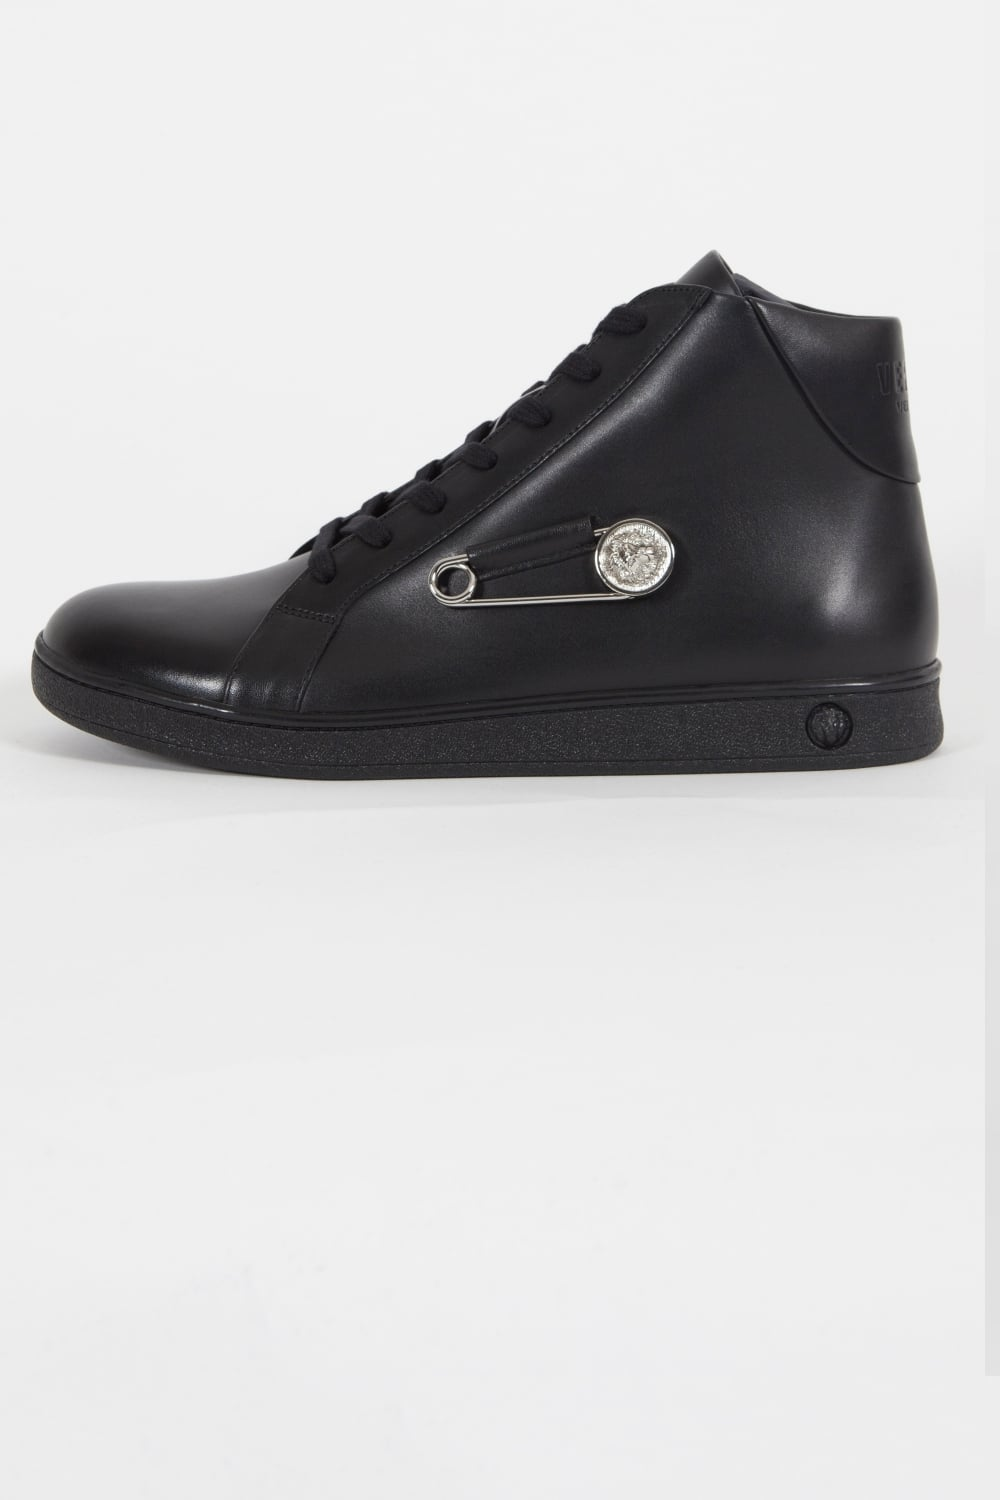 clearance prices limited guantity performance sportswear Versus Versace | Lion & Pin Logo Hi Top Trainers Black | Intro